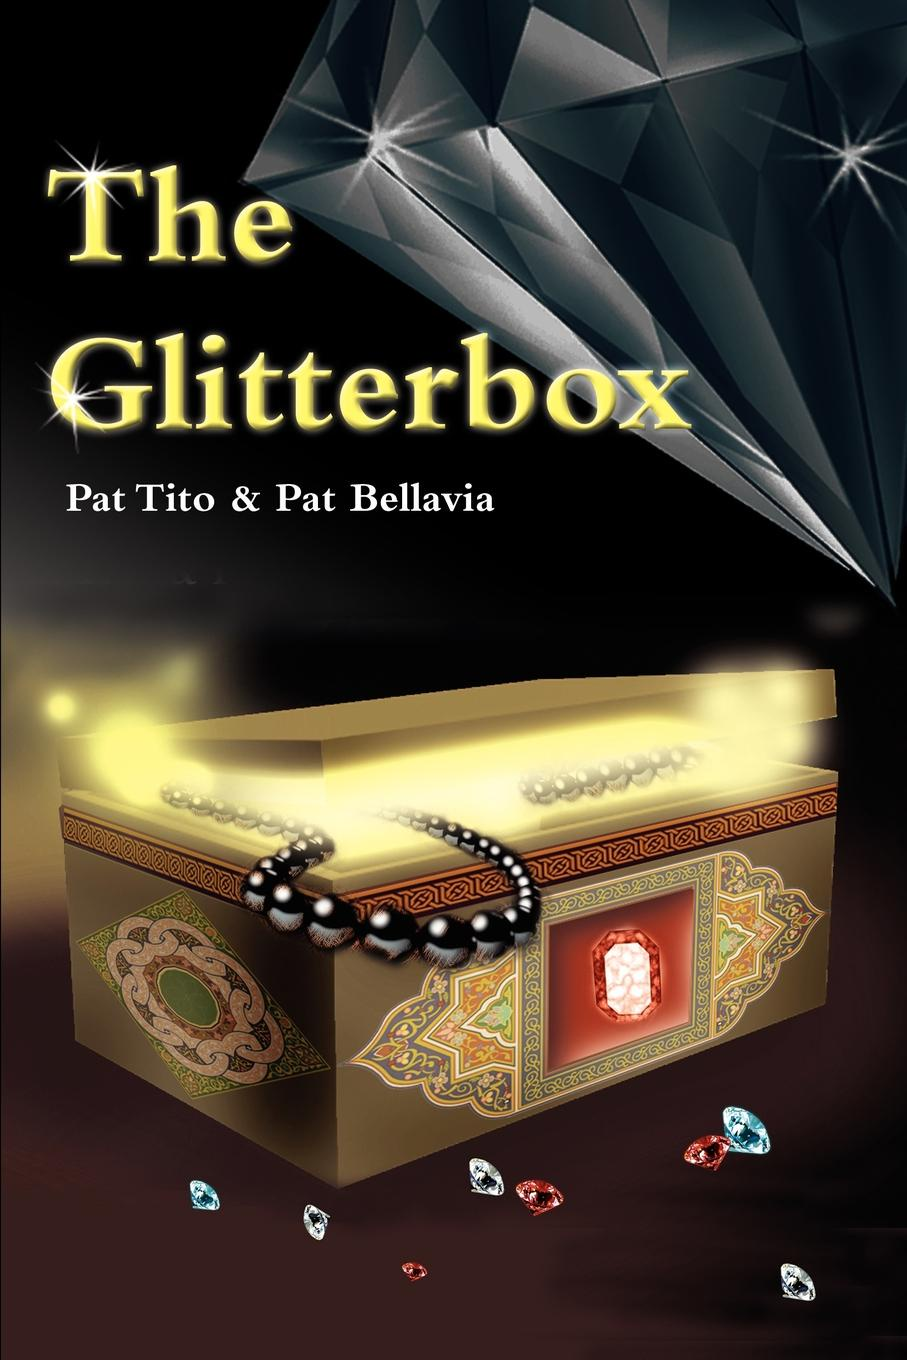 Pat Tito, Pat Bellavia The Glitter Box pat eleanor pat denise and marie ferris for the love of david